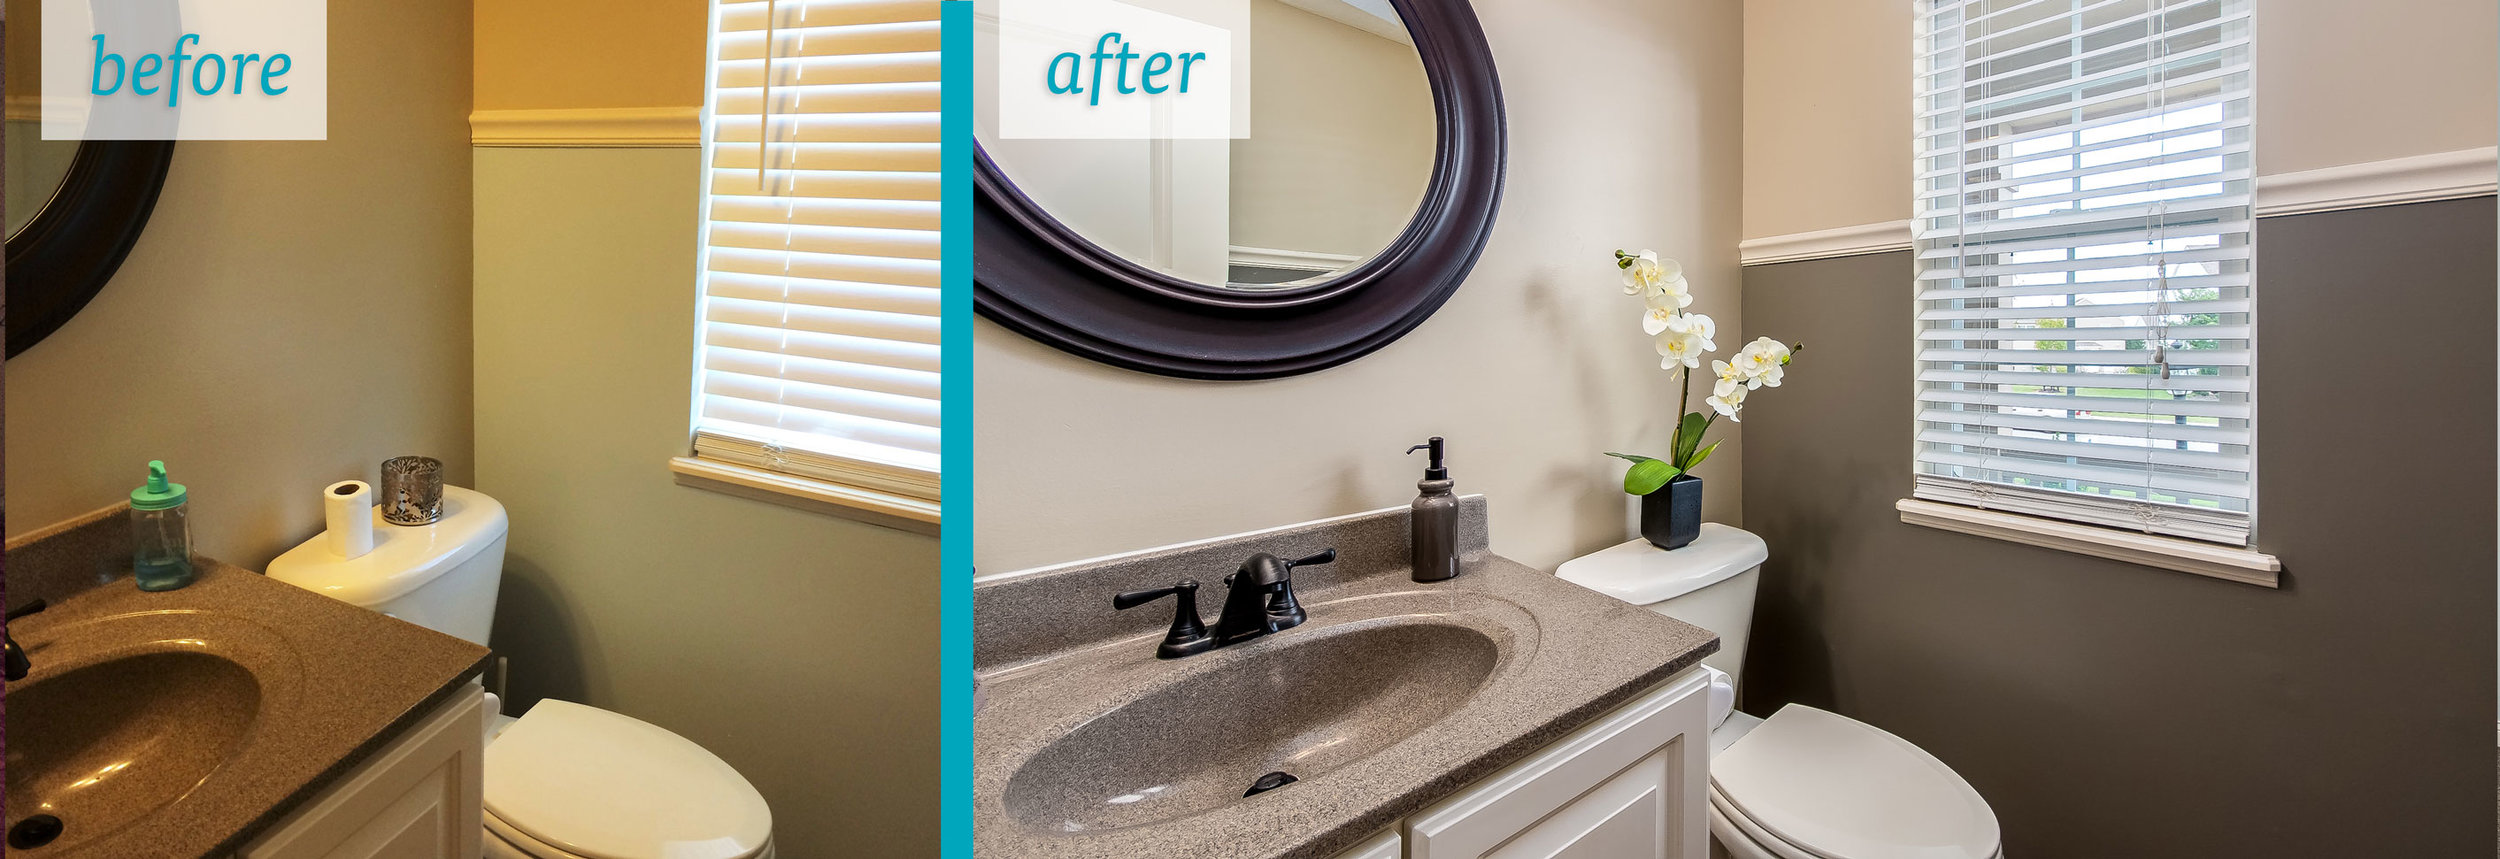 large-main-3-bath1-before-after.jpg